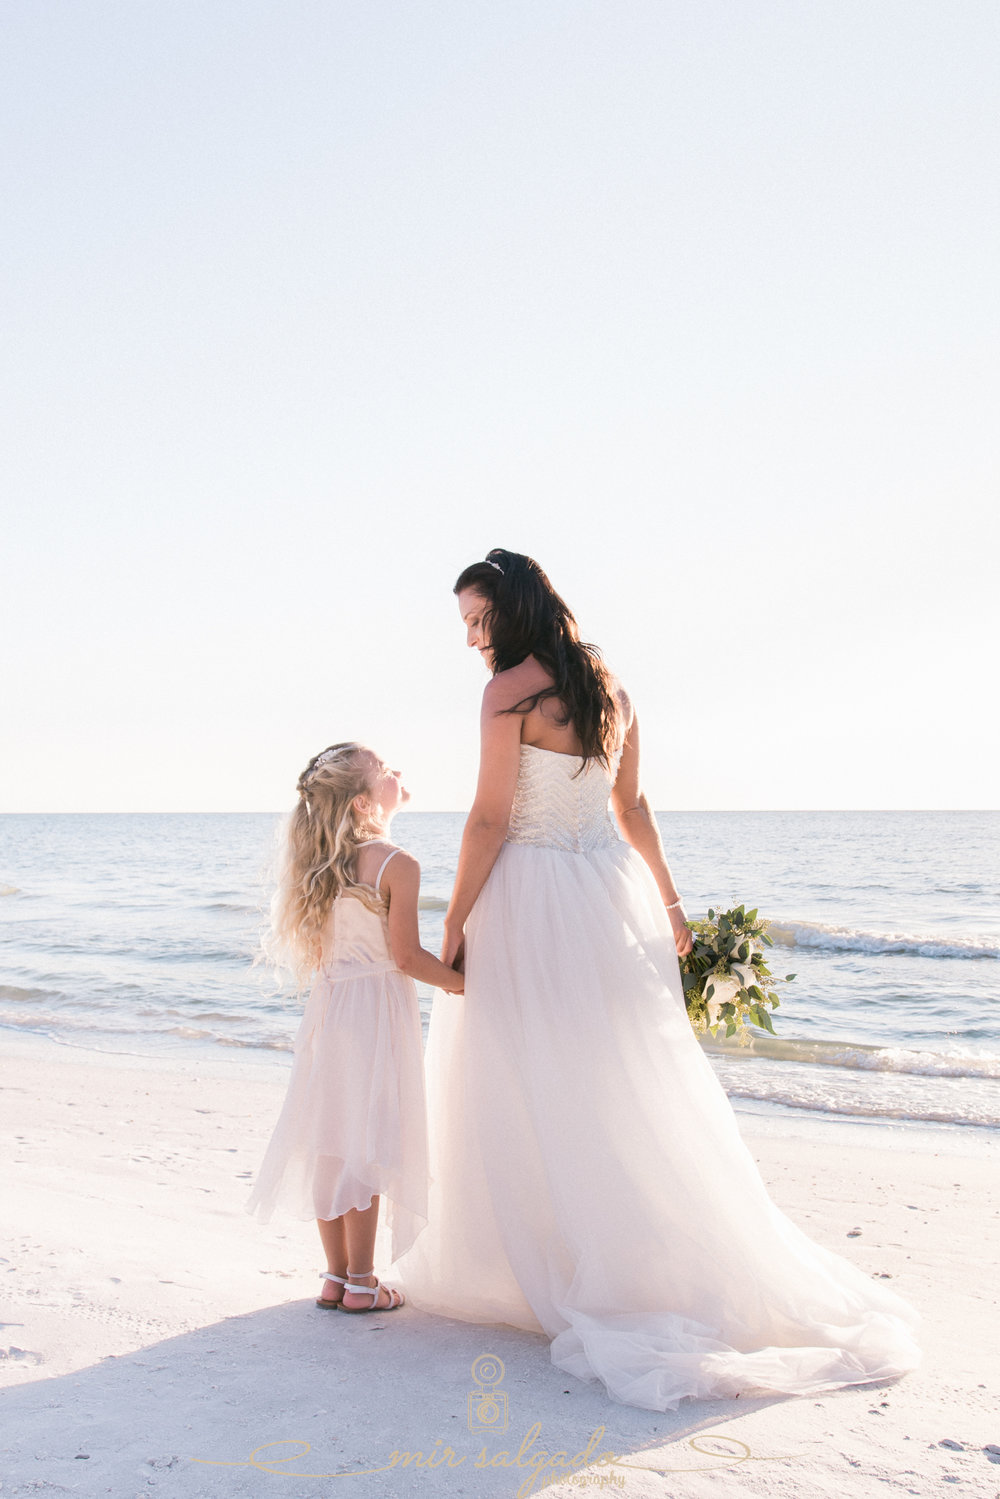 bride-and-flower-girl, beach-wedding-photo